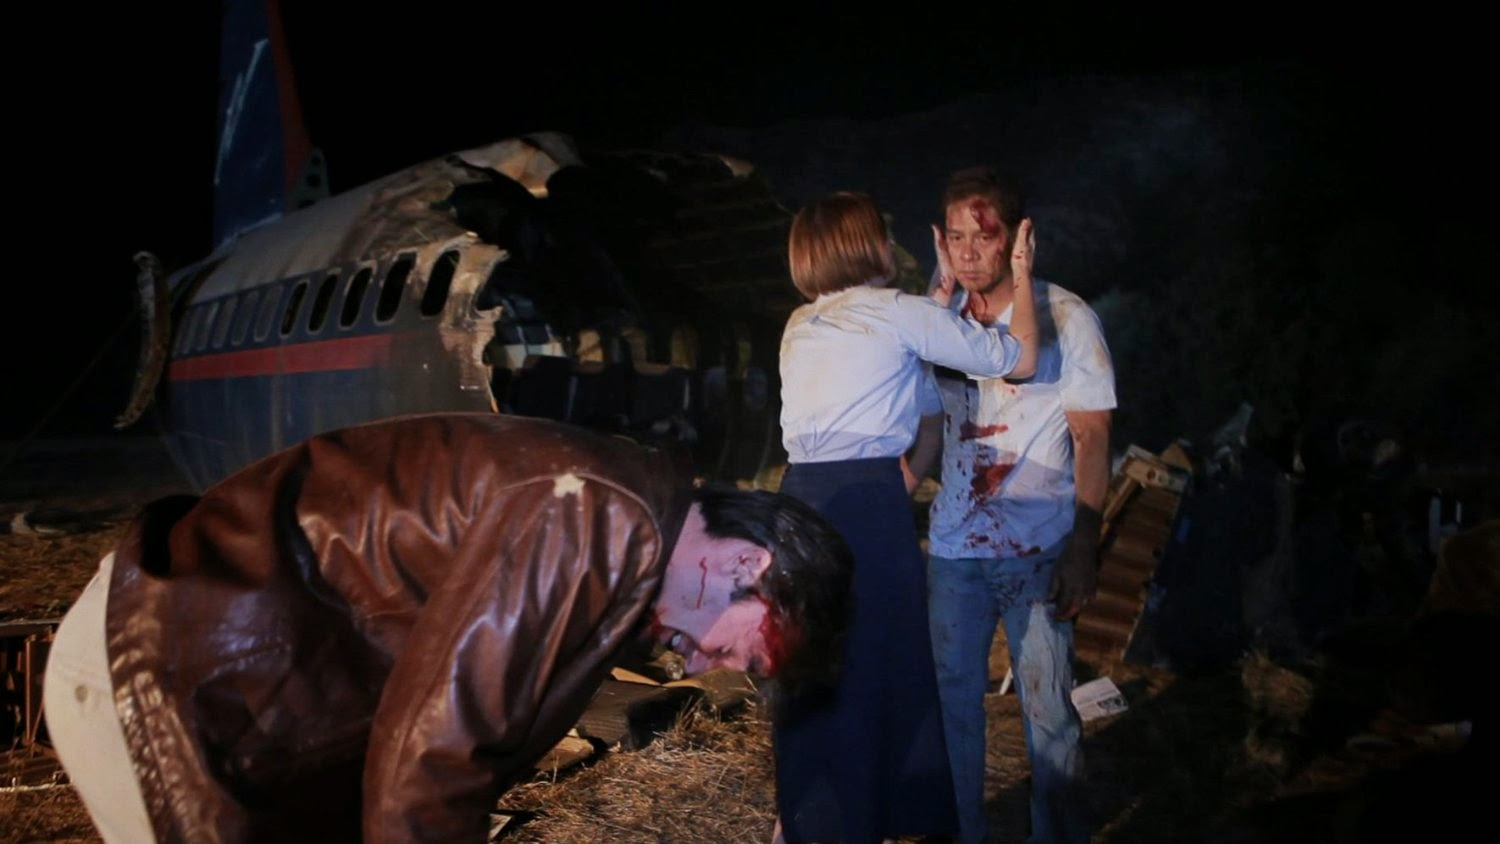 The aftermath of a plane crash - (l to r) Ken Garcia, Samantha Sloyan and James Lyons in Area 407 (2012)